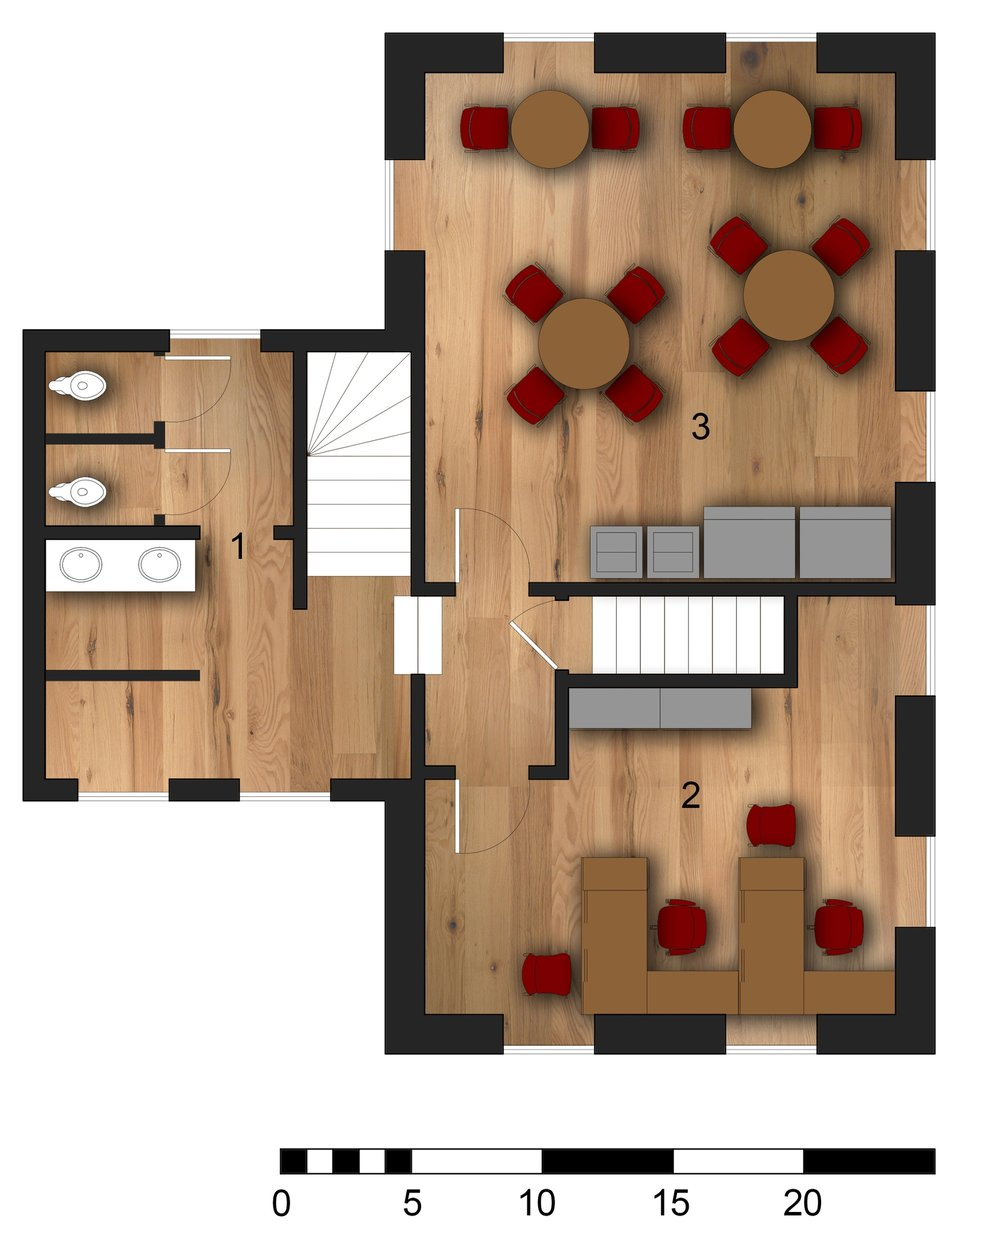 Second Floor Plan 1.Restrooms   2.Office  3.Casual Dining Room